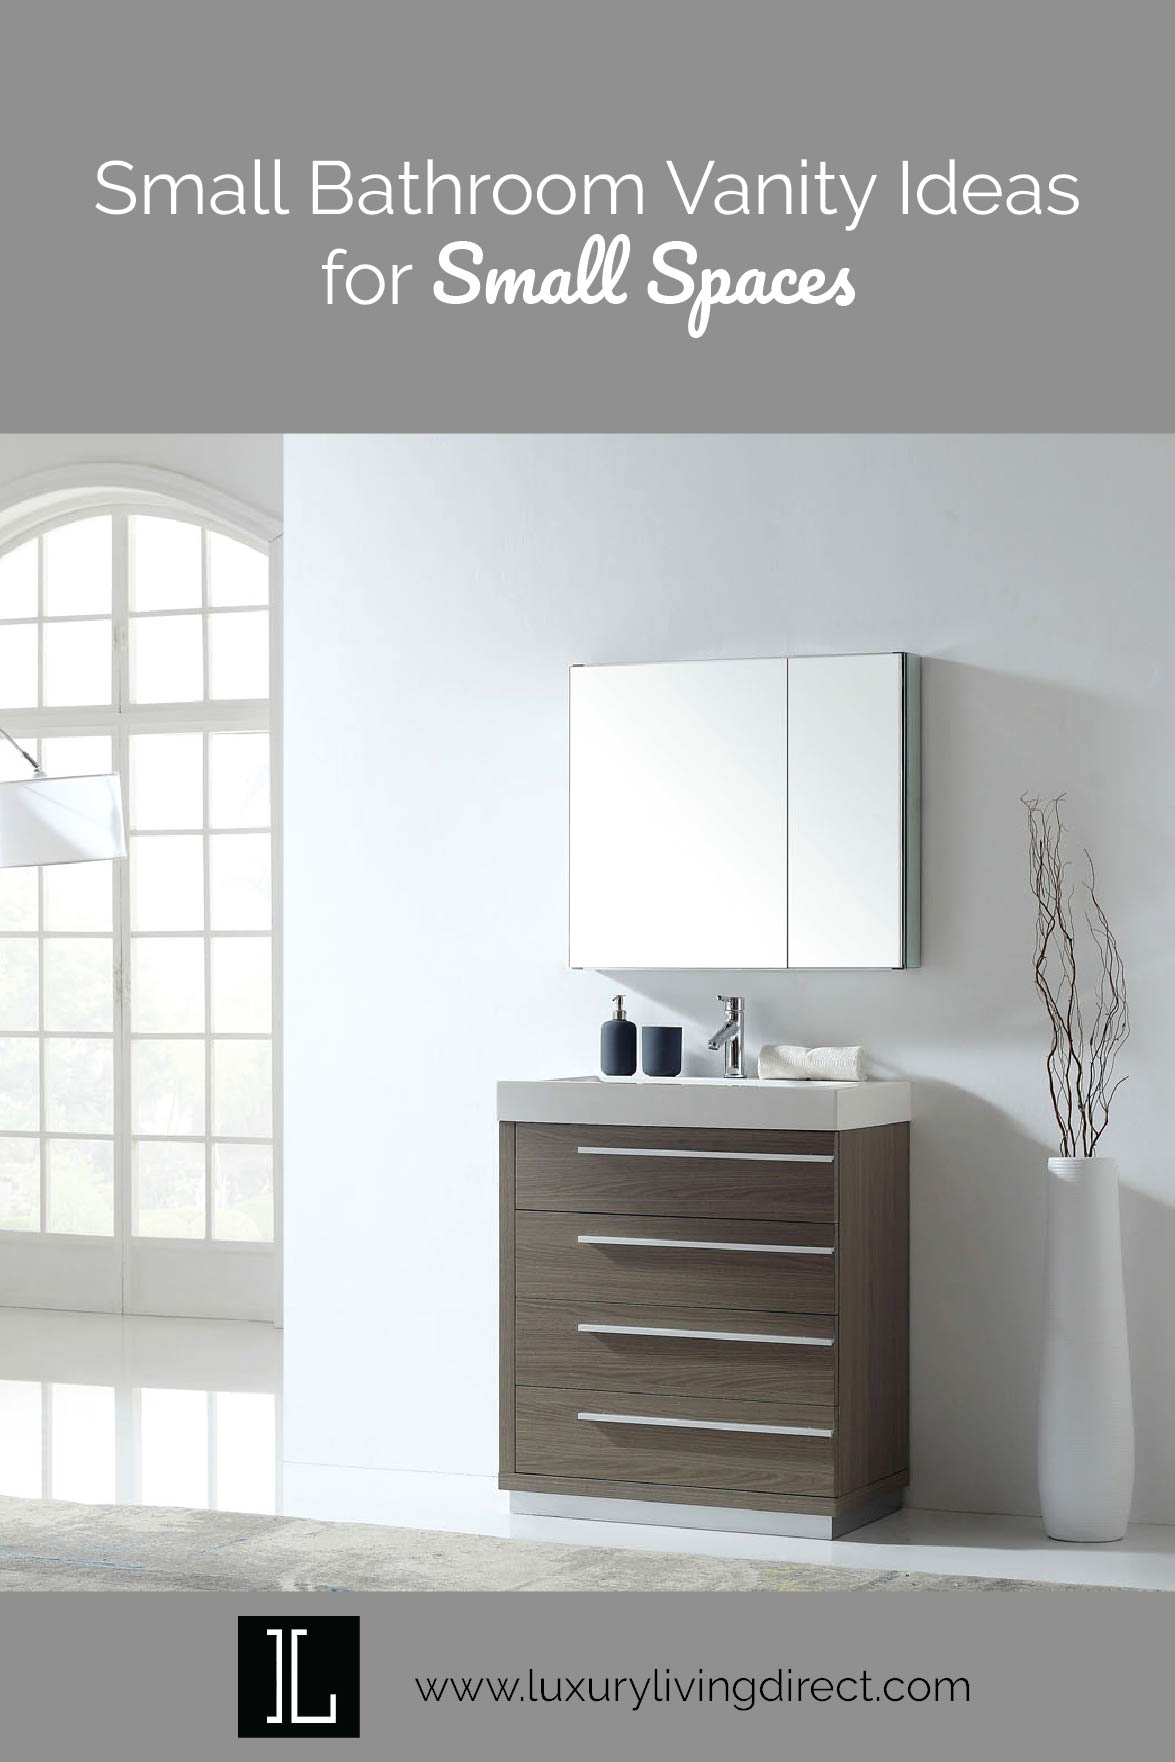 Small Bathroom Vanity Ideas for Small Spaces  Luxury